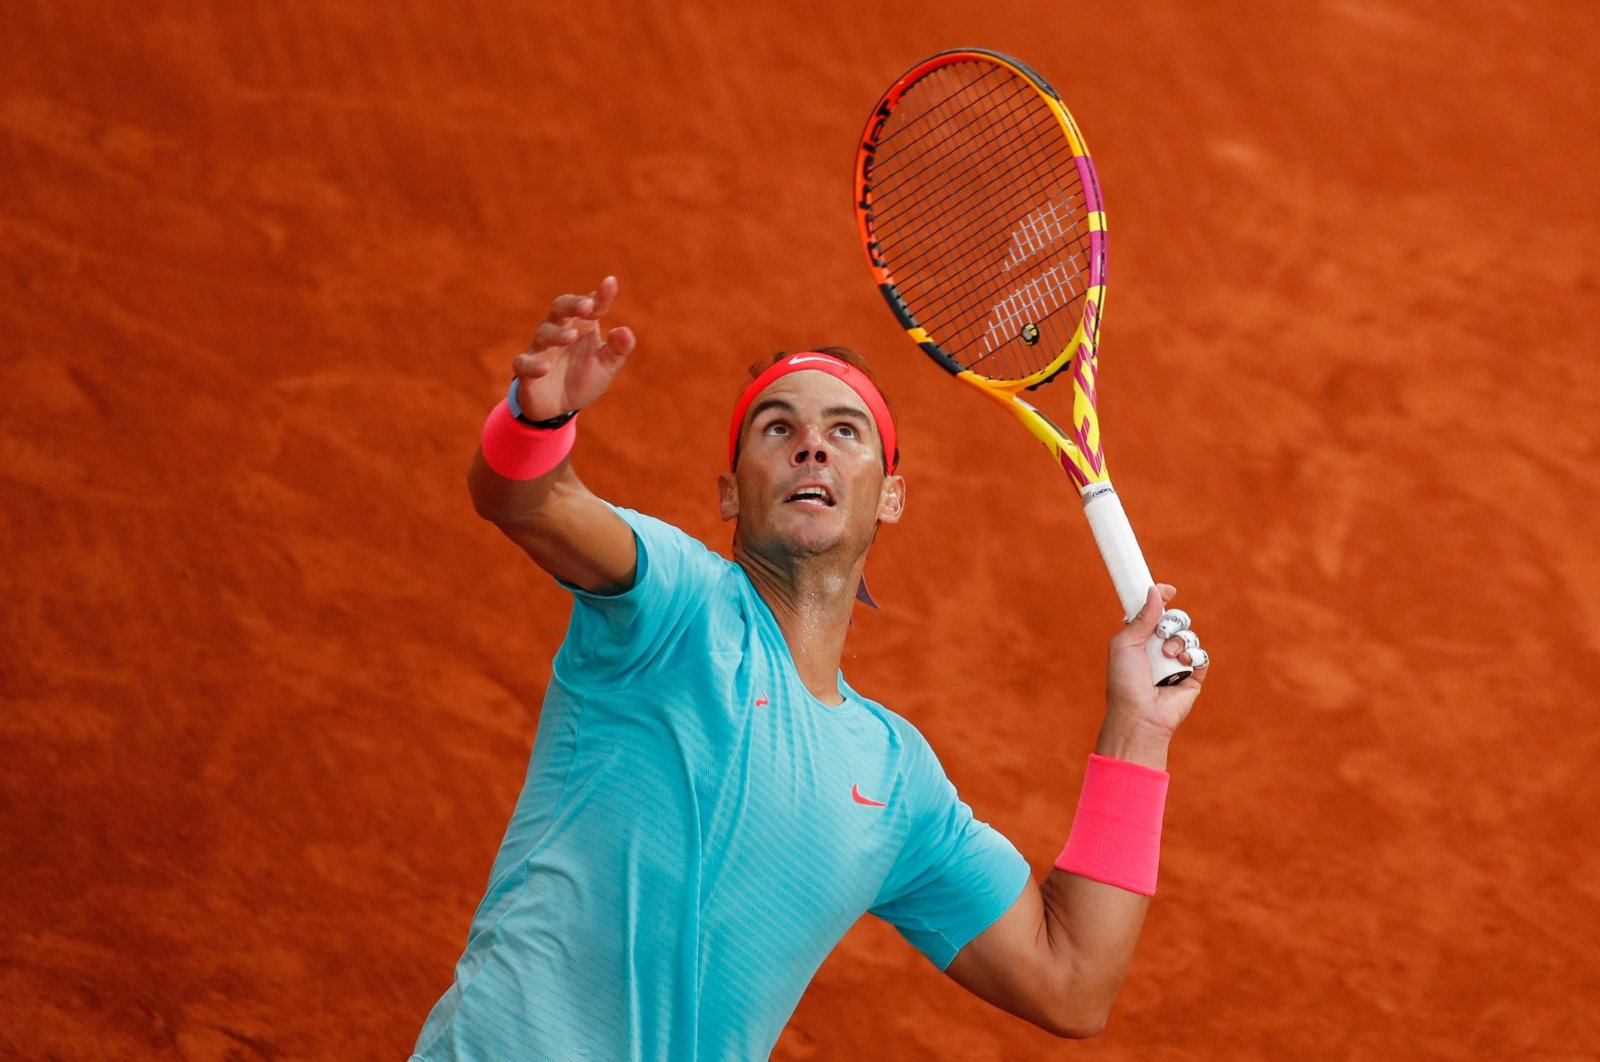 Rafael Nadal in action during his French Open first round match against Egor Gerasimov, in Paris, France, Sept. 28, 2020. (Reuters Photo)